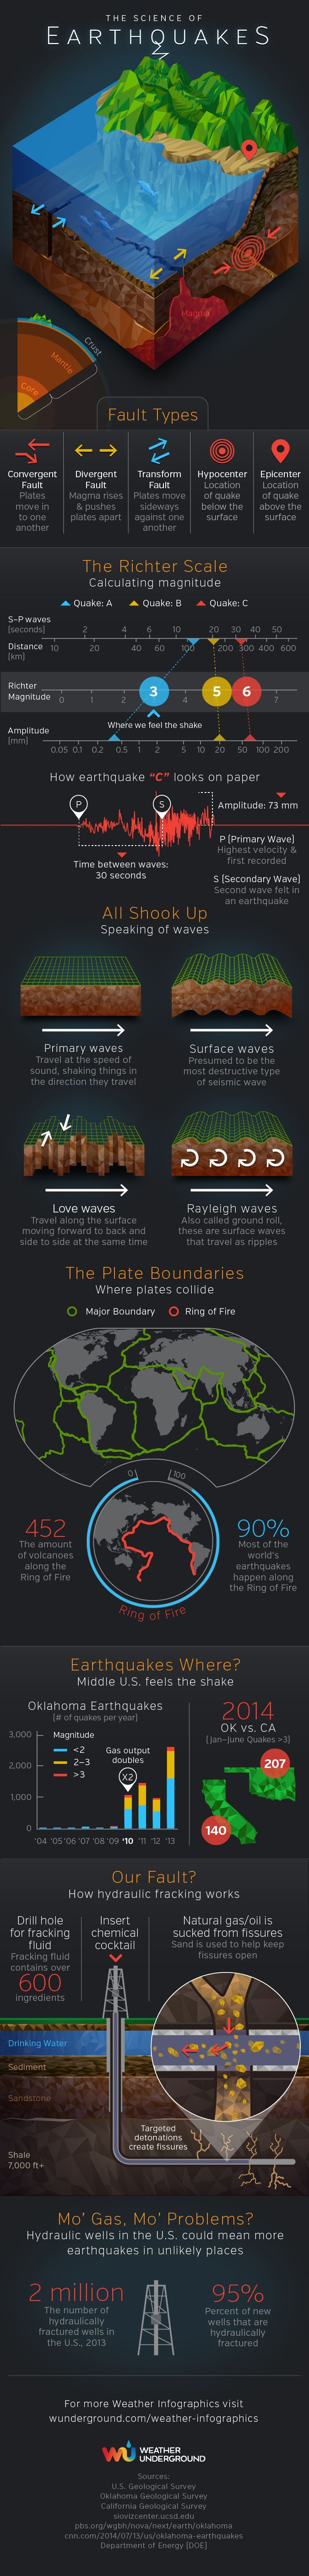 The science of earthquakes is both fascinating and complicated, even in this over-simplified version.